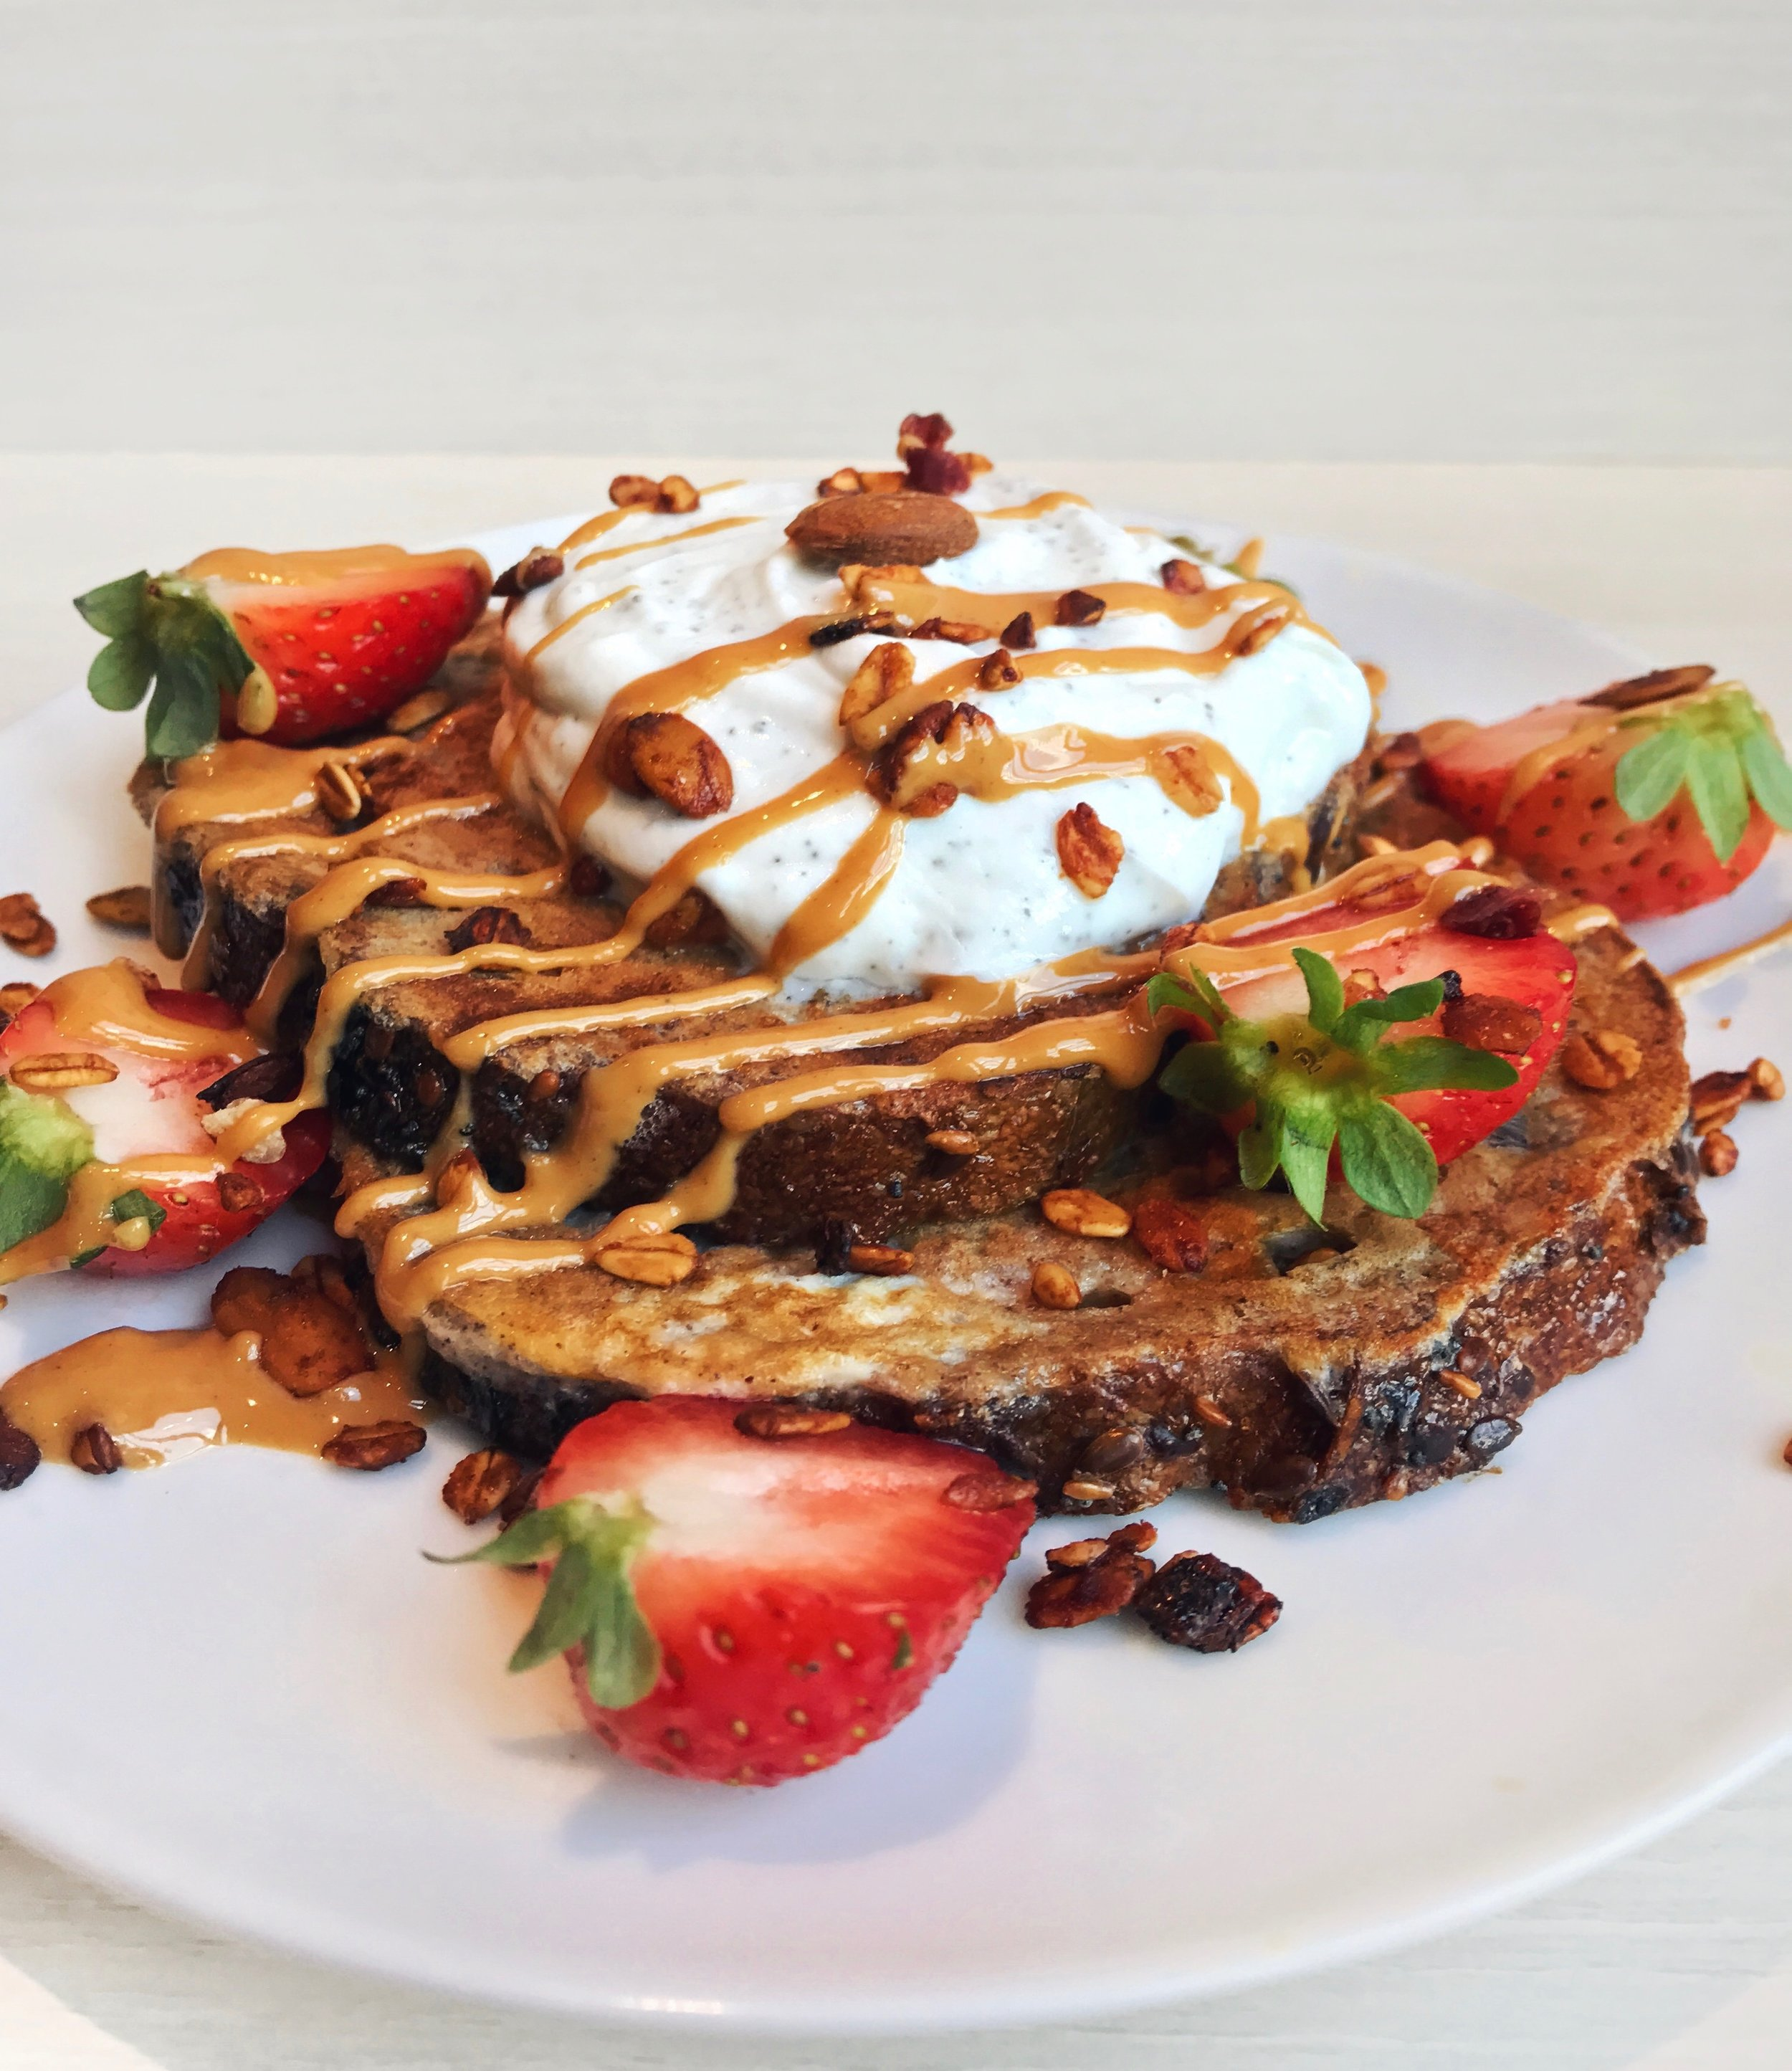 Strawberries,Peanut Butter & Cream French Toasts - - 1 egg-5 tbsp soy milk- a dash of cinnamon powder- a scoop of @vitalproteinscollagen peptides (optional)Mix all the ingredients together before dipping the bread in the mixture (leave 1min)and then grilling it in the pan with coconut oil. The grilling takes about 2min on each on medium heat.Toppings: strawberries +greek yogurt +@wild_friendspeanut butter drizzles +granola